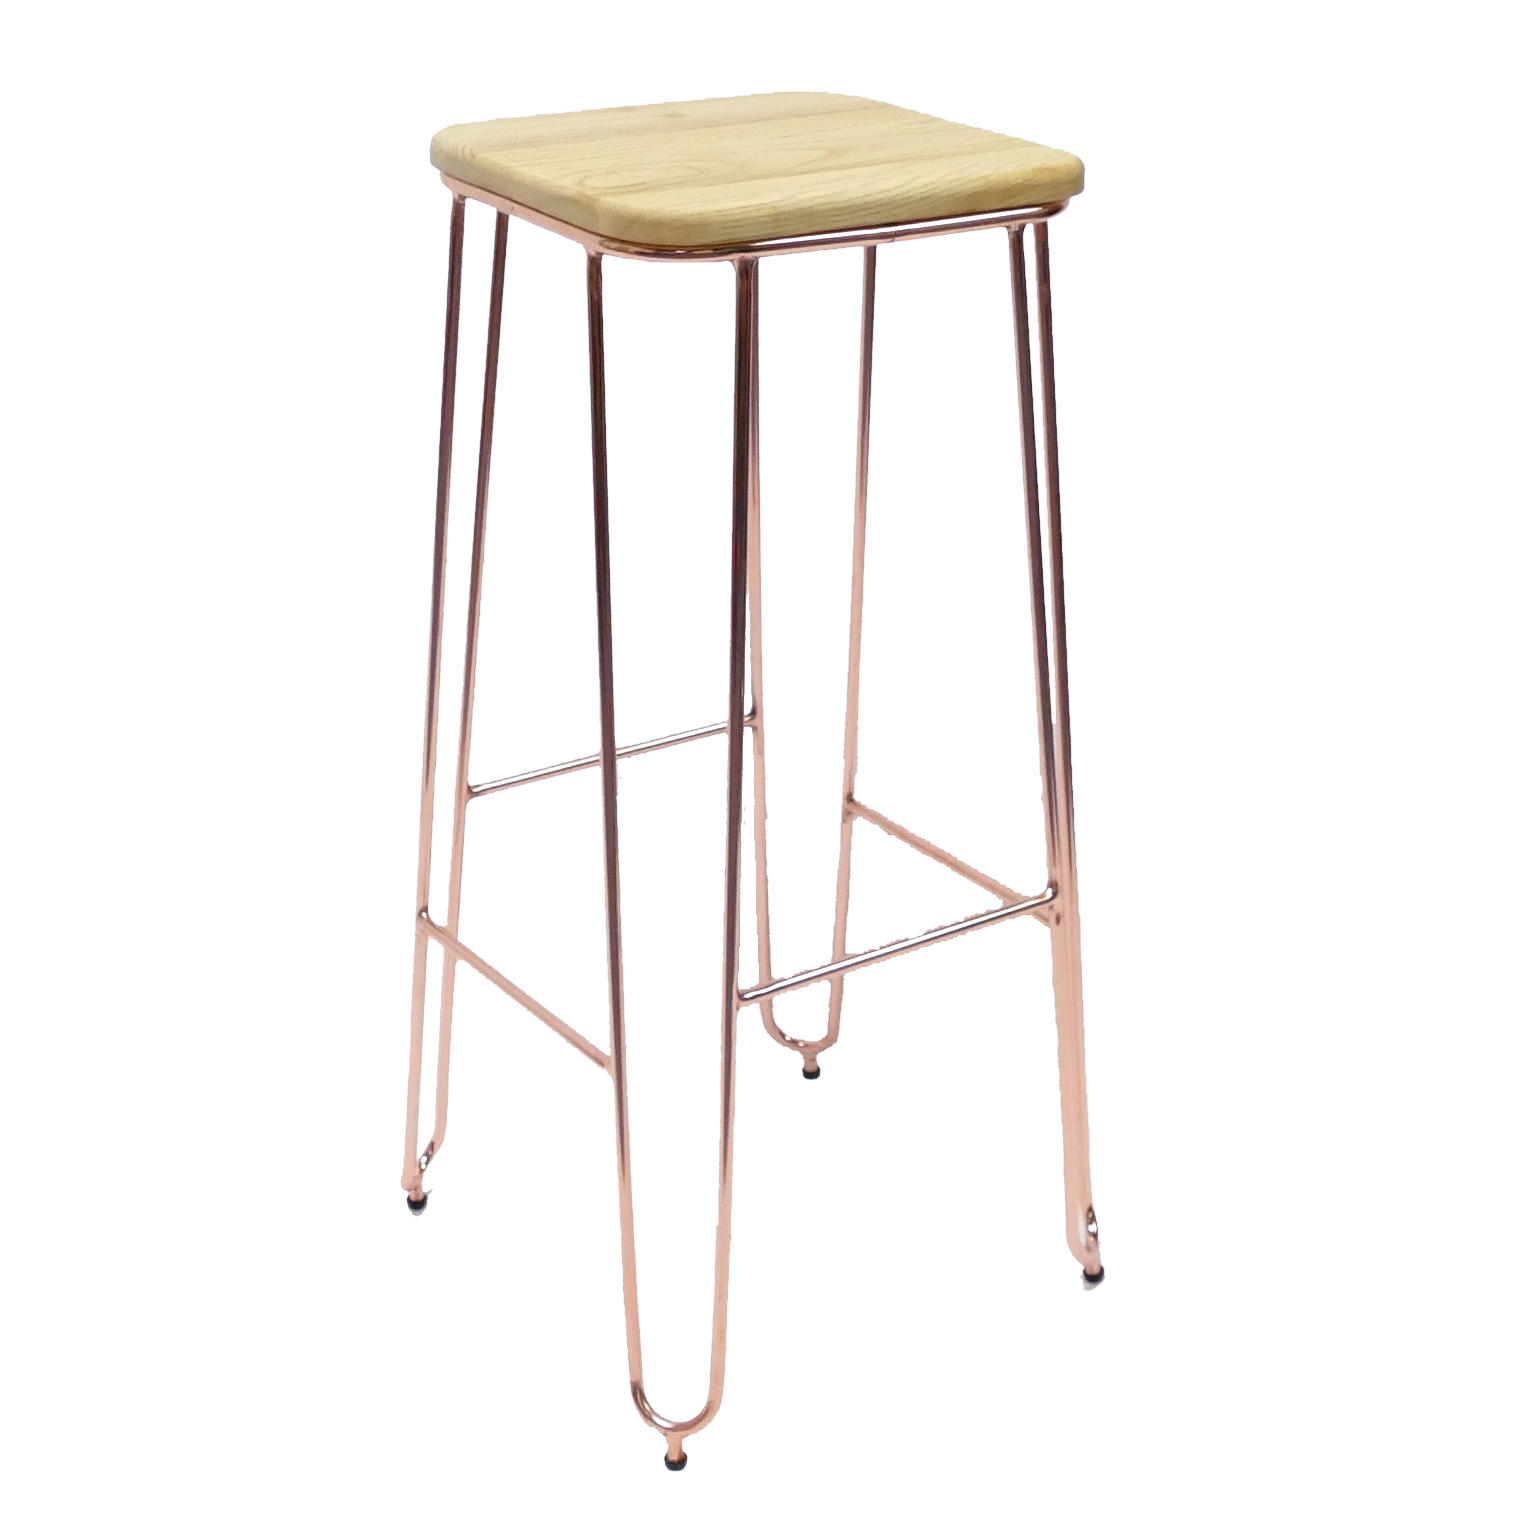 High Solid Wood Bar Stool GA203C-75STW